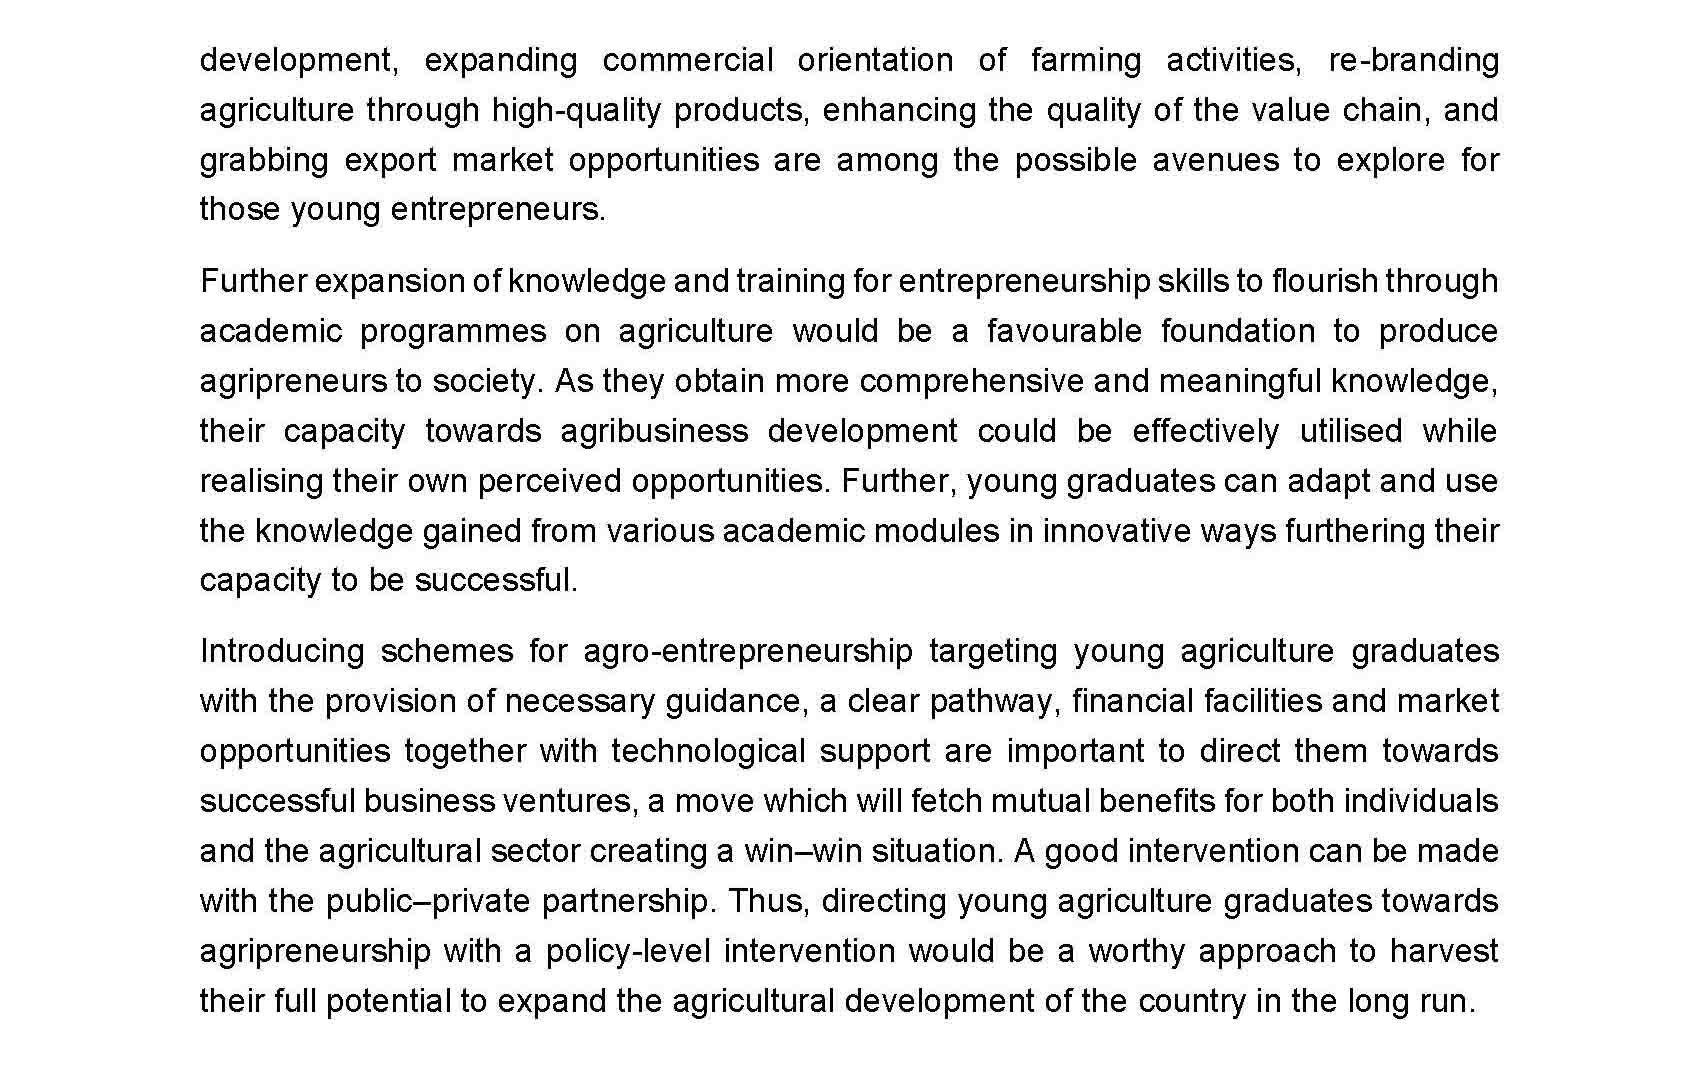 Motivating agriculture graduates with entrepreneurship opportunities Page 6